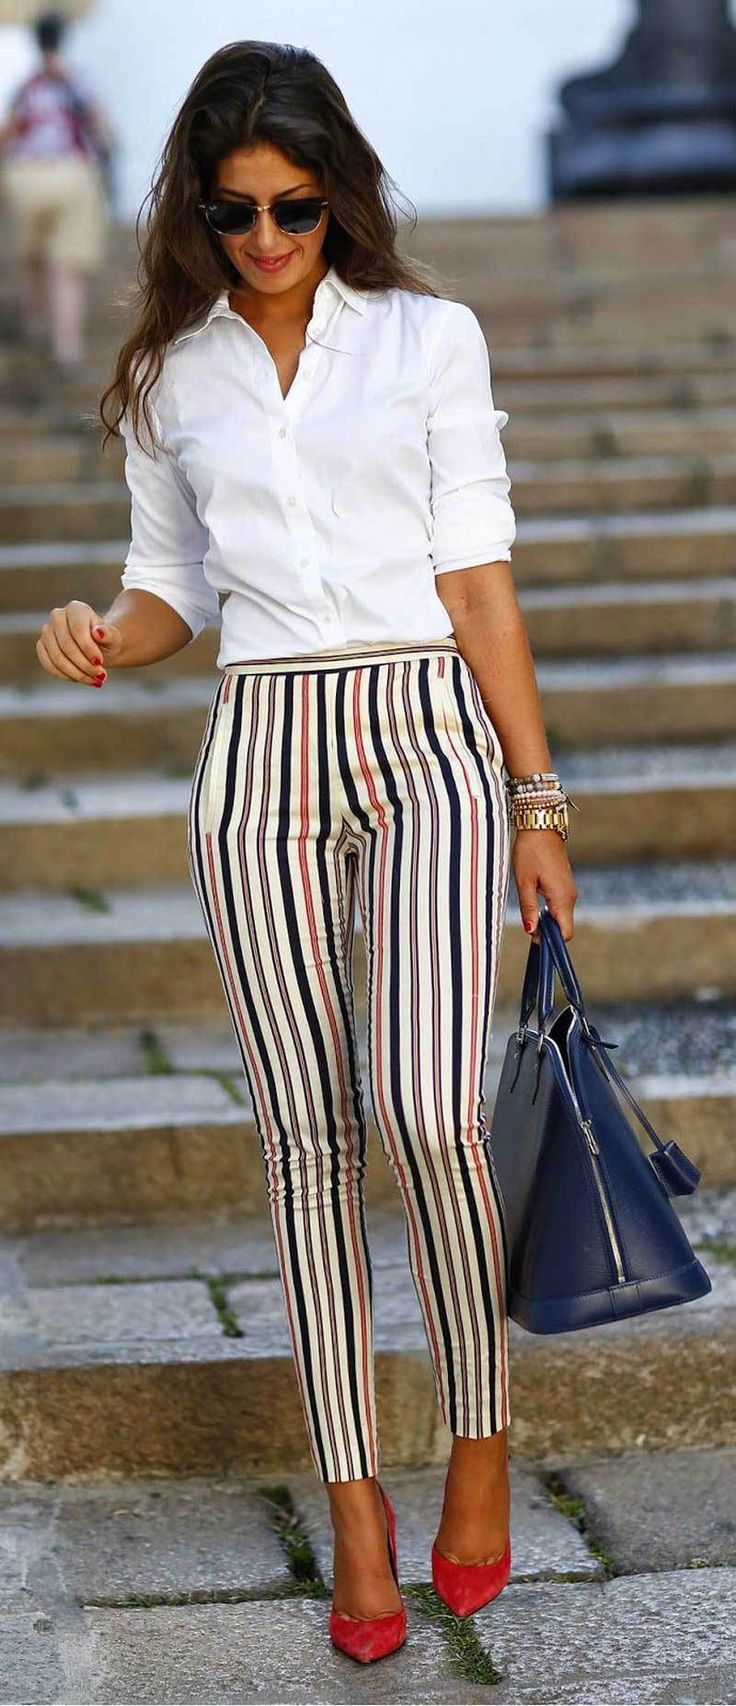 Here are 26 ideas how to dress for success and these are pretty easy pairings you can try. Enjoy them and stay tuned for more stylish ideas!